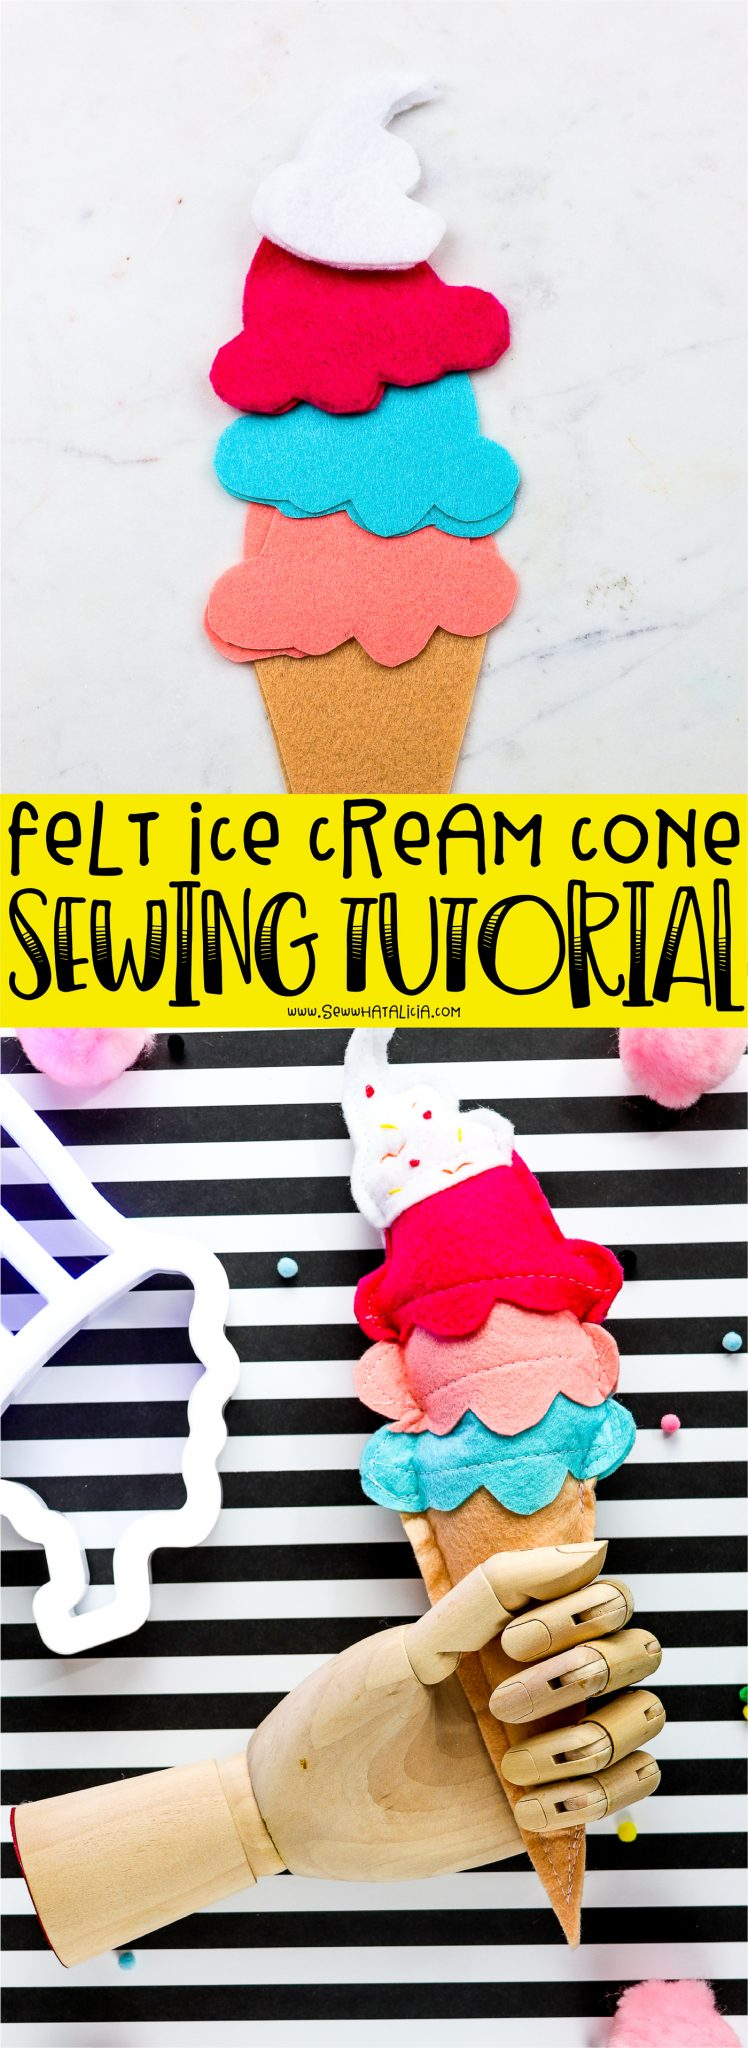 pictured stuffed felt ice cream cone